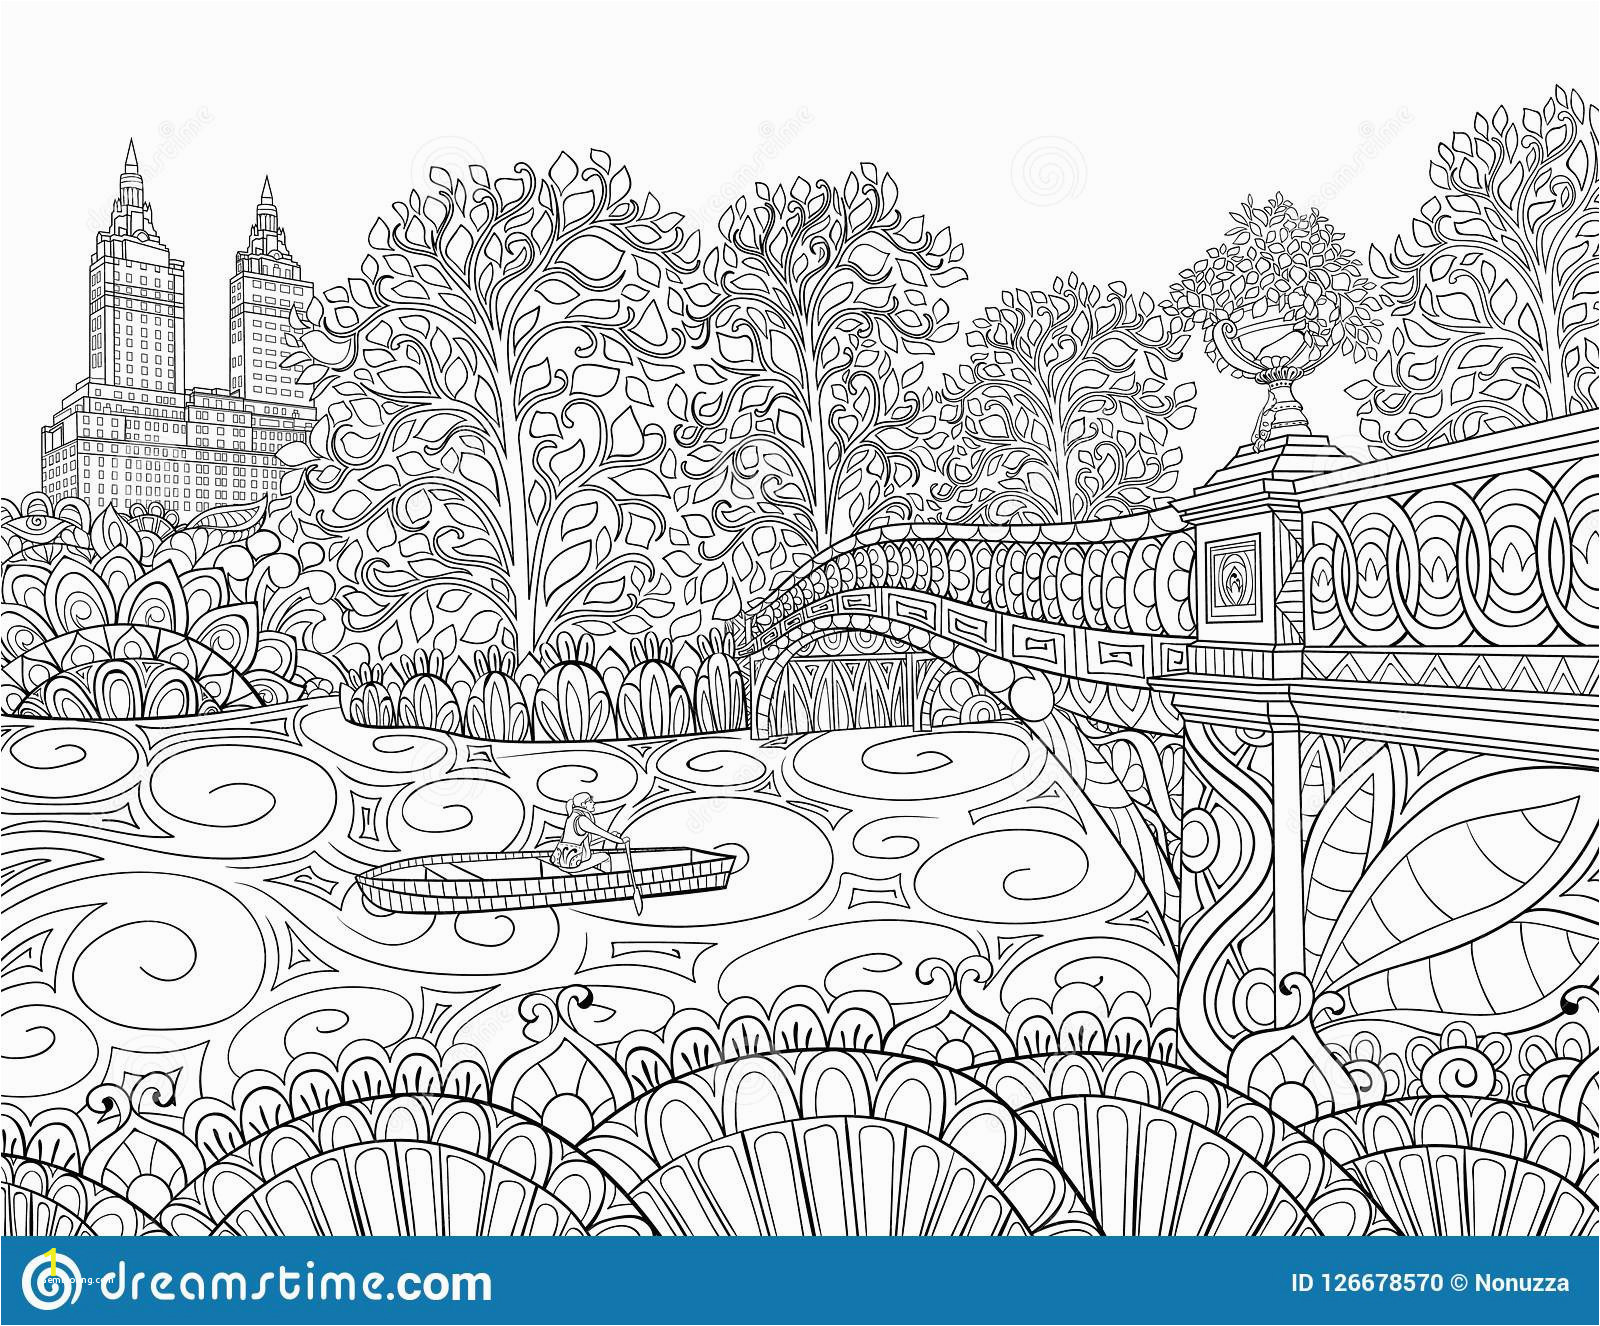 free printable coloring sheets for kids fresh adult coloring book page a landscape image for relaxing of free printable coloring sheets for kids